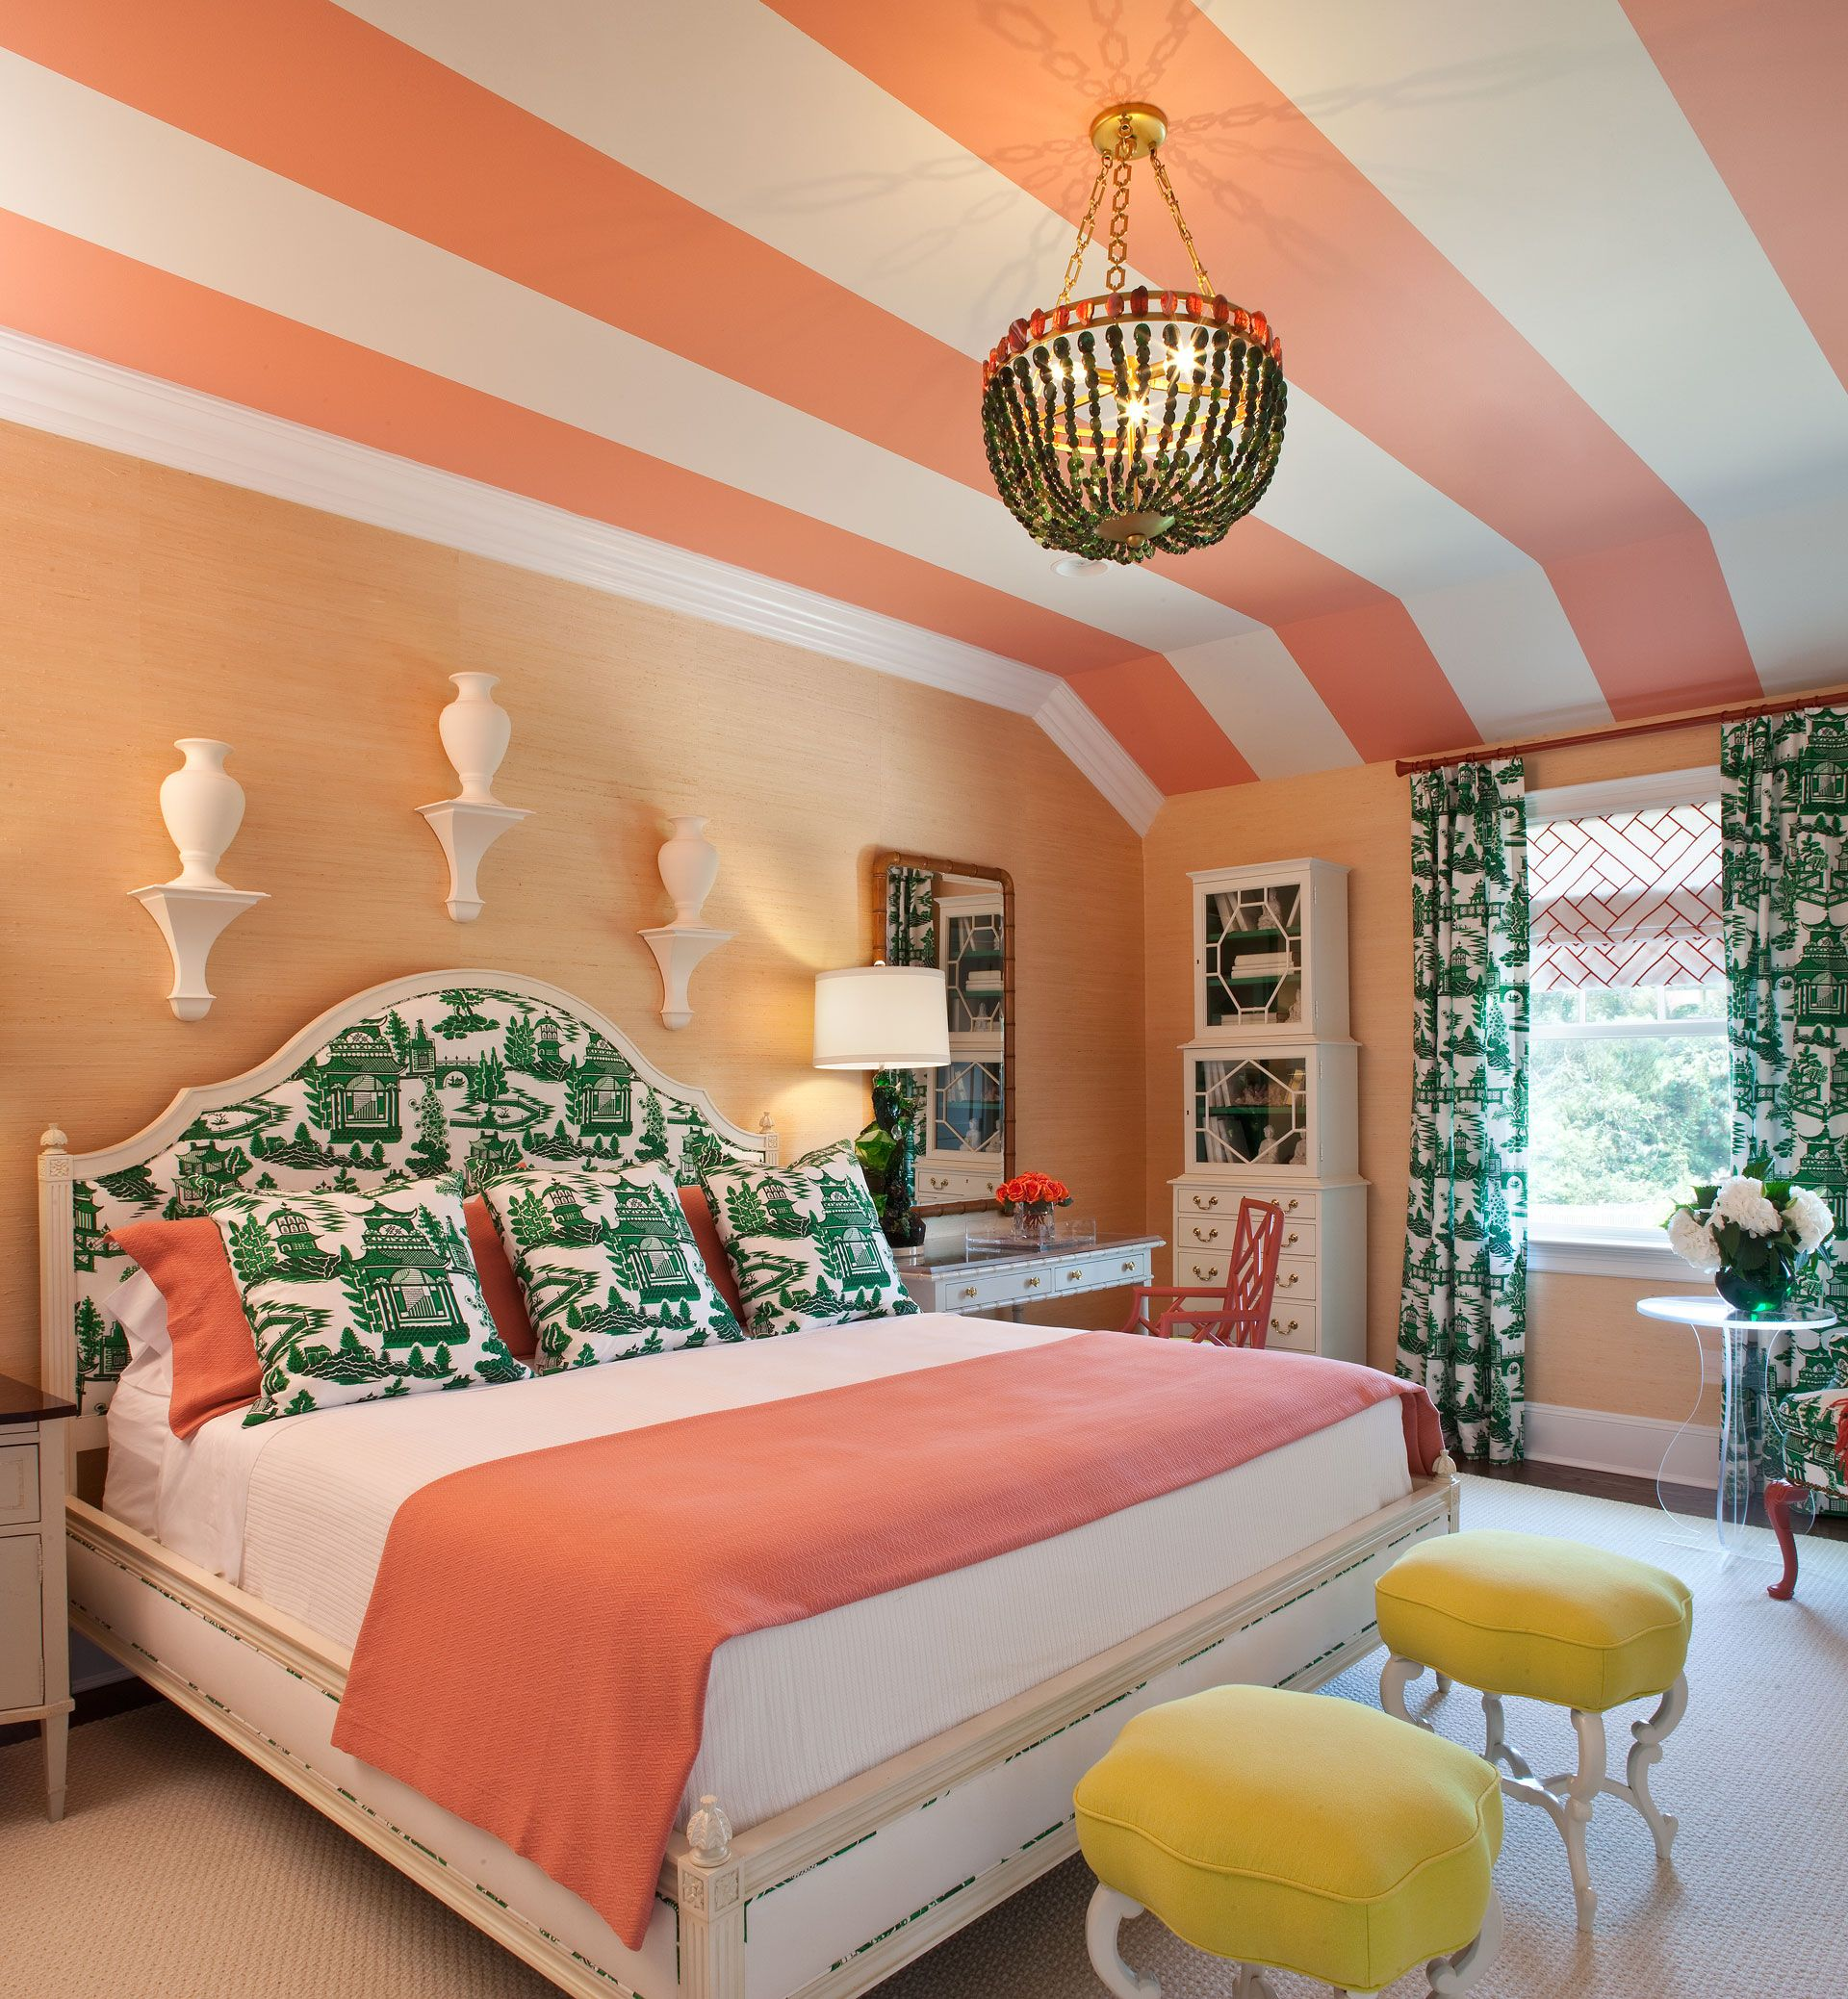 Decorating with Color - How To Decorate Rooms with Colors